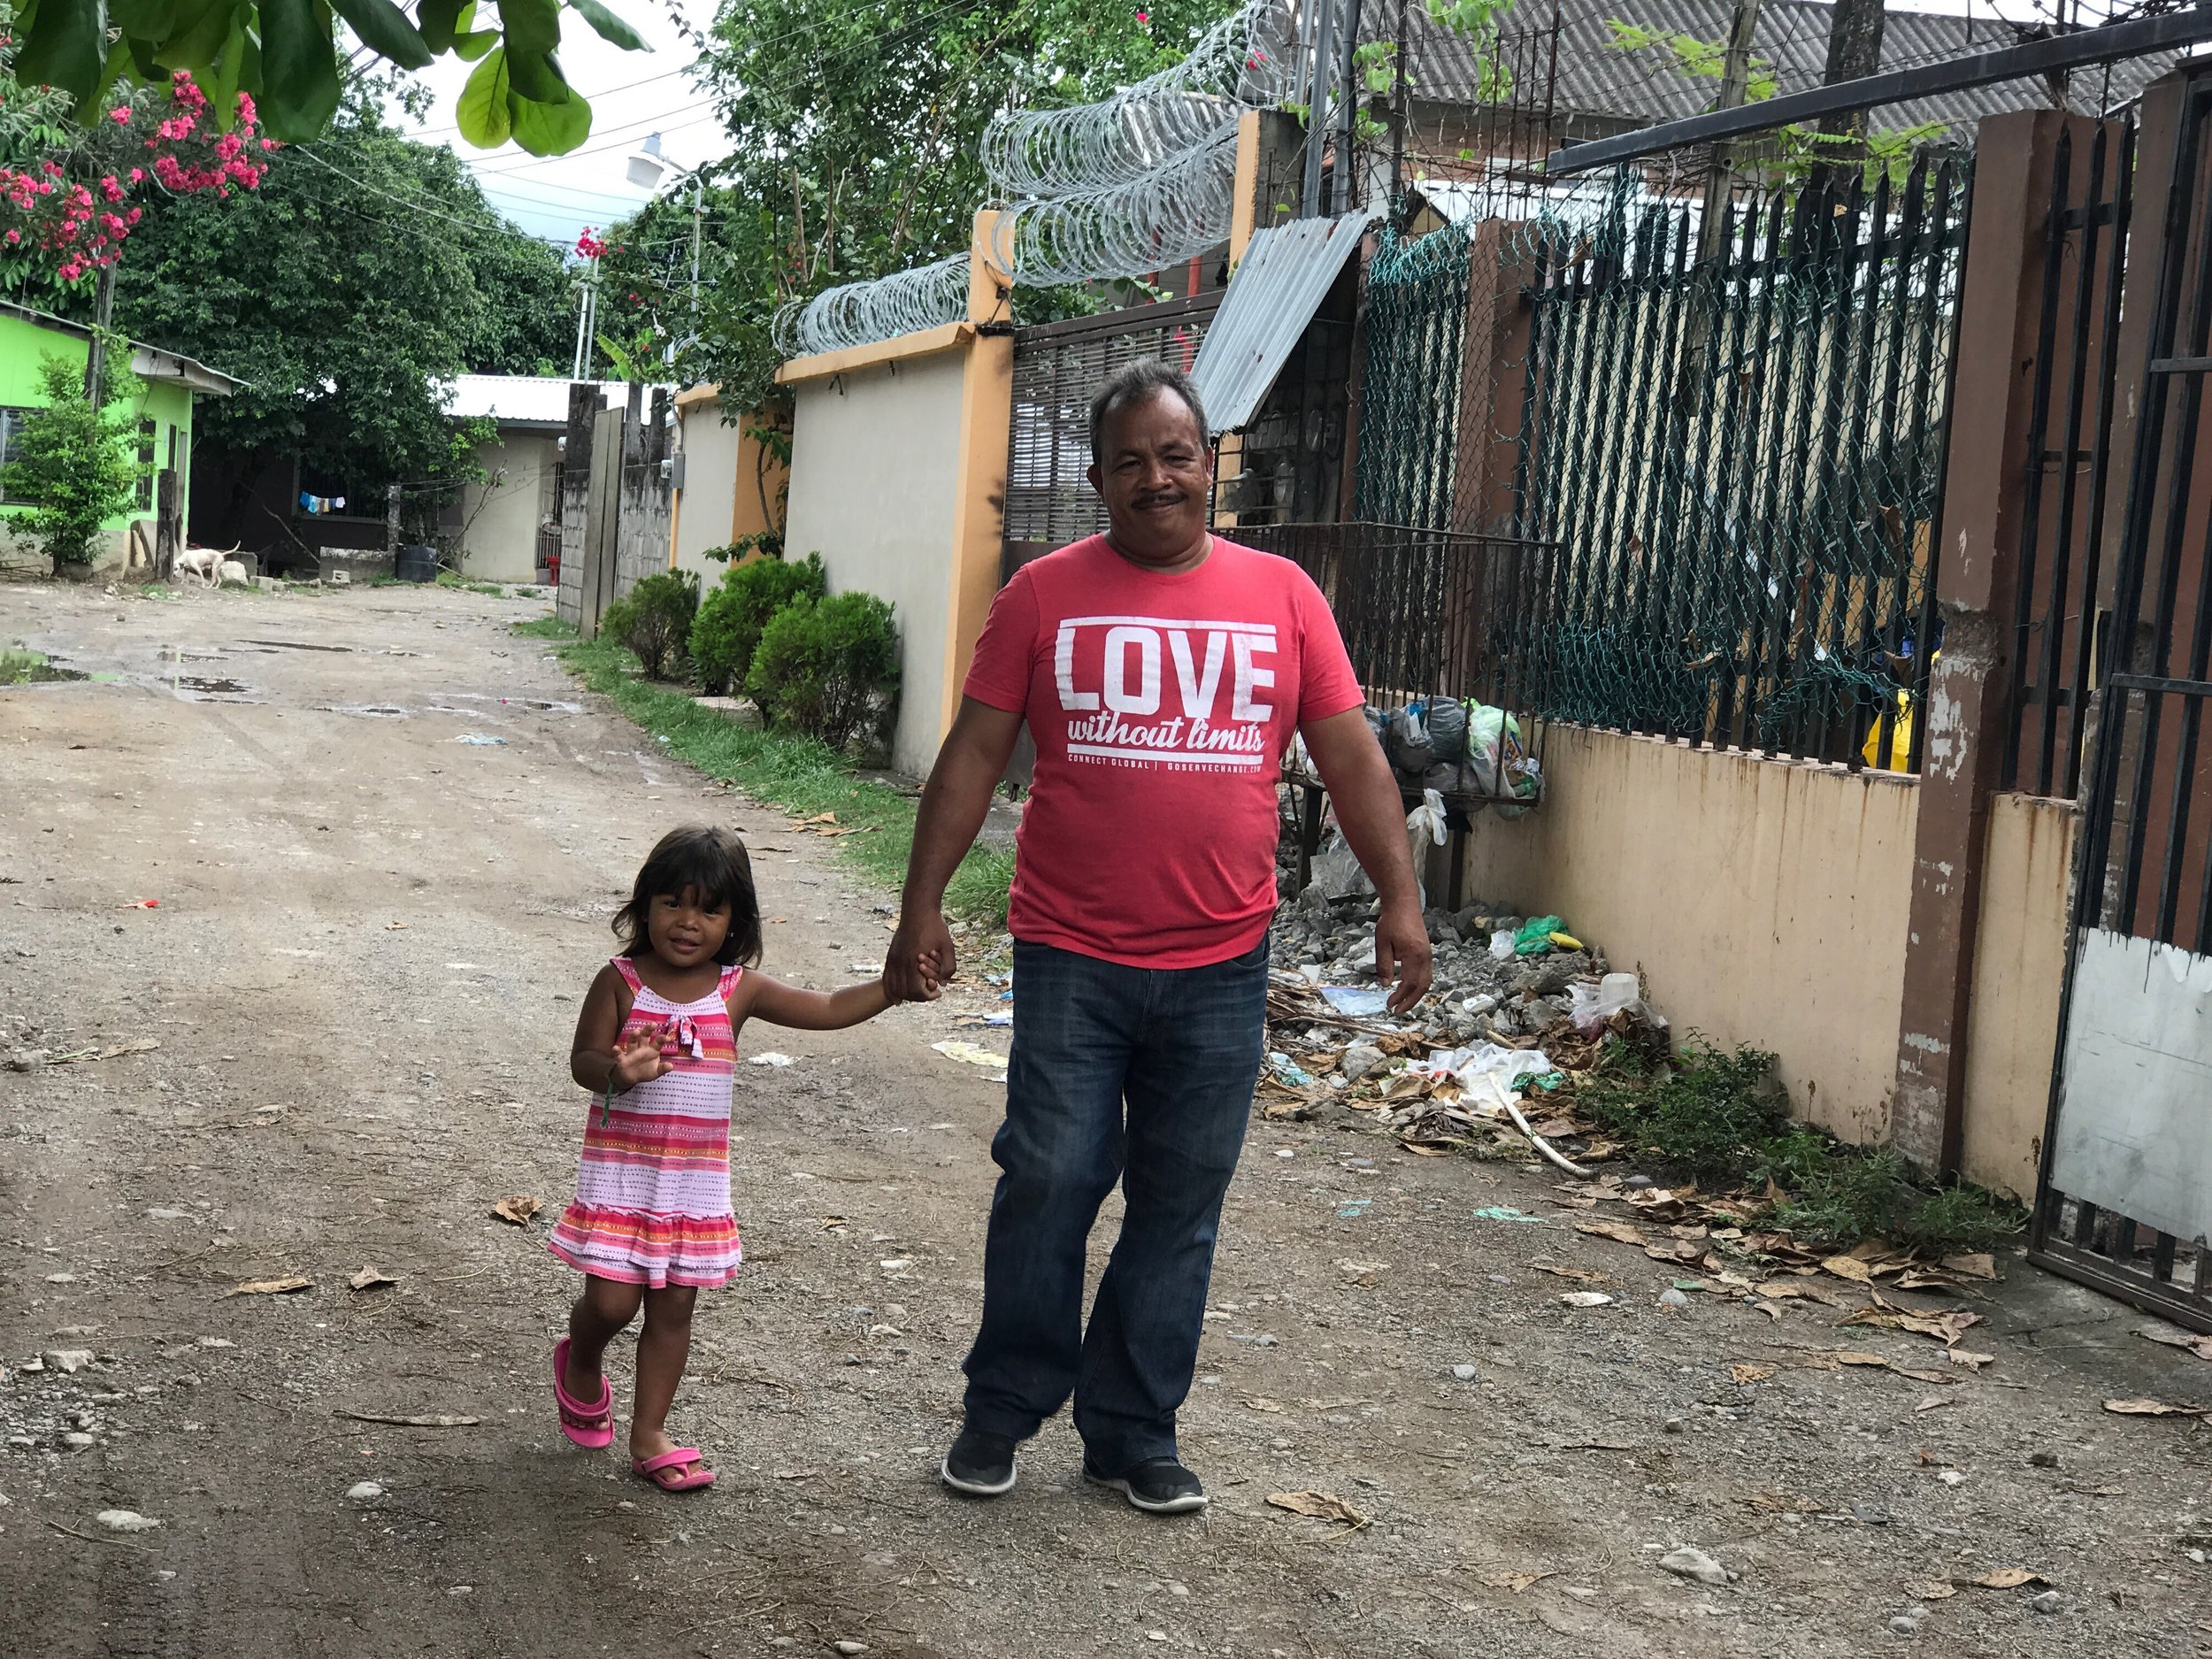 Jorge Amador, National Director in Honduras for Connect Global, with his daughter Alison in La Ceiba, Honduras.